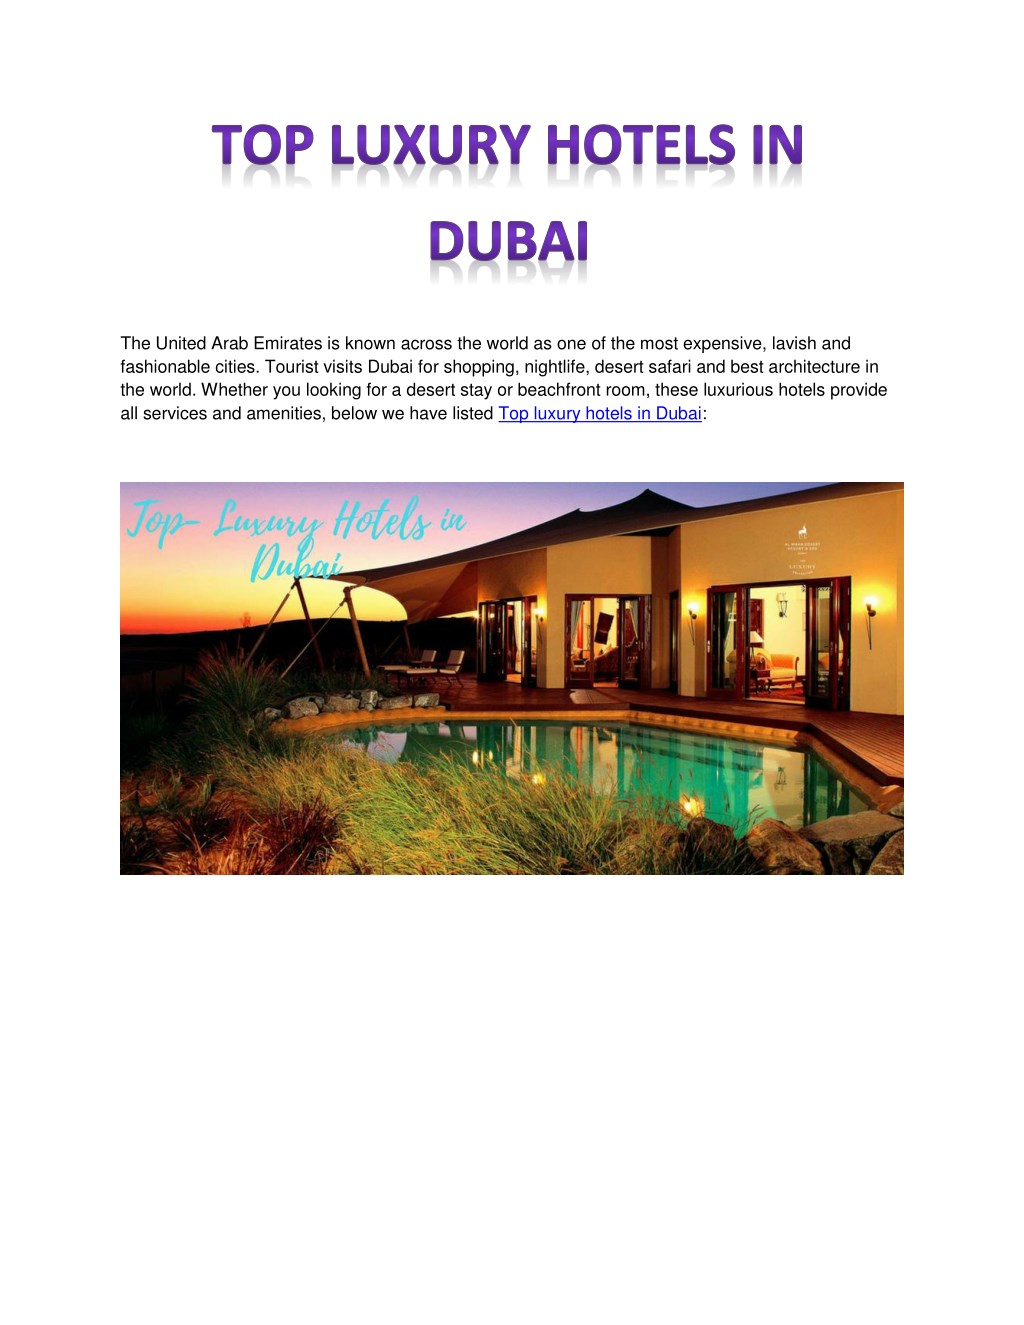 Ppt Top Luxury Hotels In Dubai Powerpoint Presentation Id 7717325